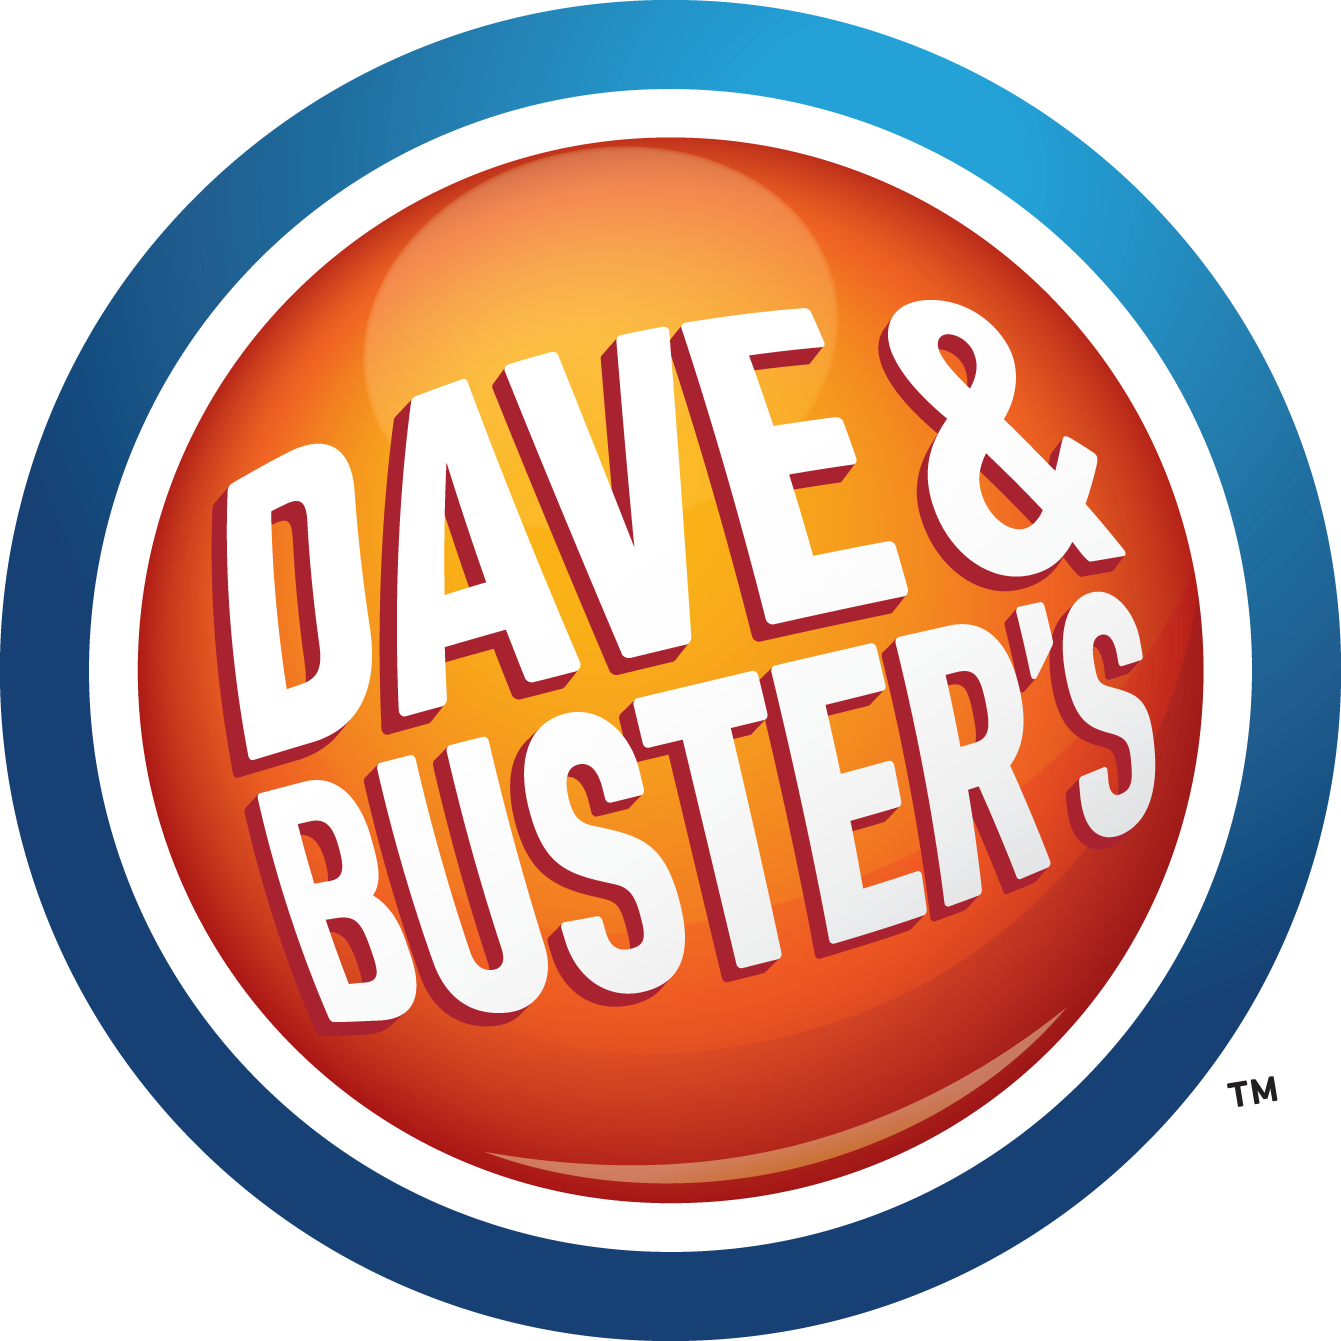 Dave and busters printable coupons january 2013 - See Reviews Photos Directions Phone Numbers And More For Dave And Busters Locations In Sunrise Fl I Ve Been To Dave And Buster S All Over The Country